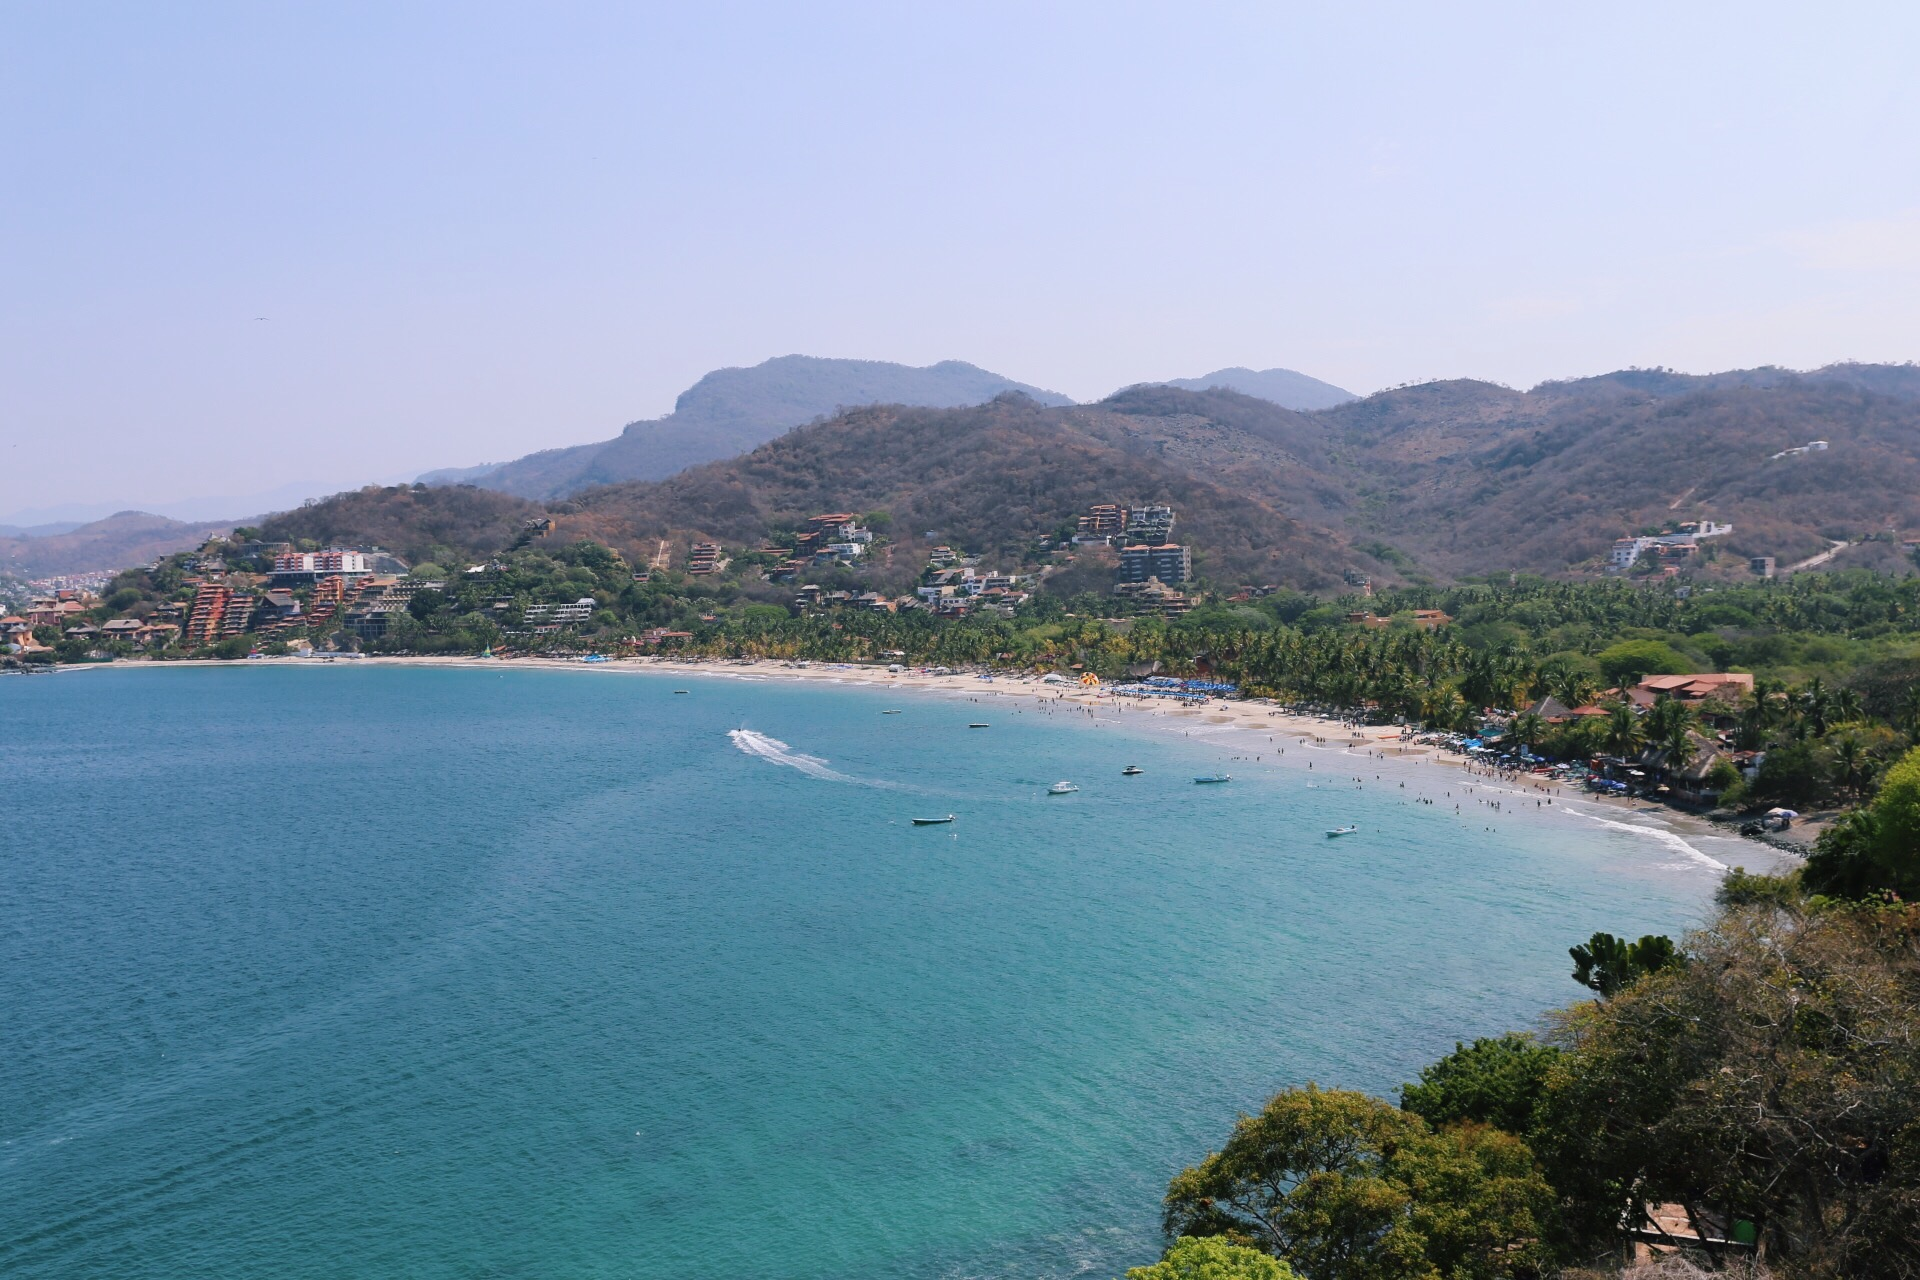 11 Things to Know Before Your Trip to Zihuatanejo, Mexico